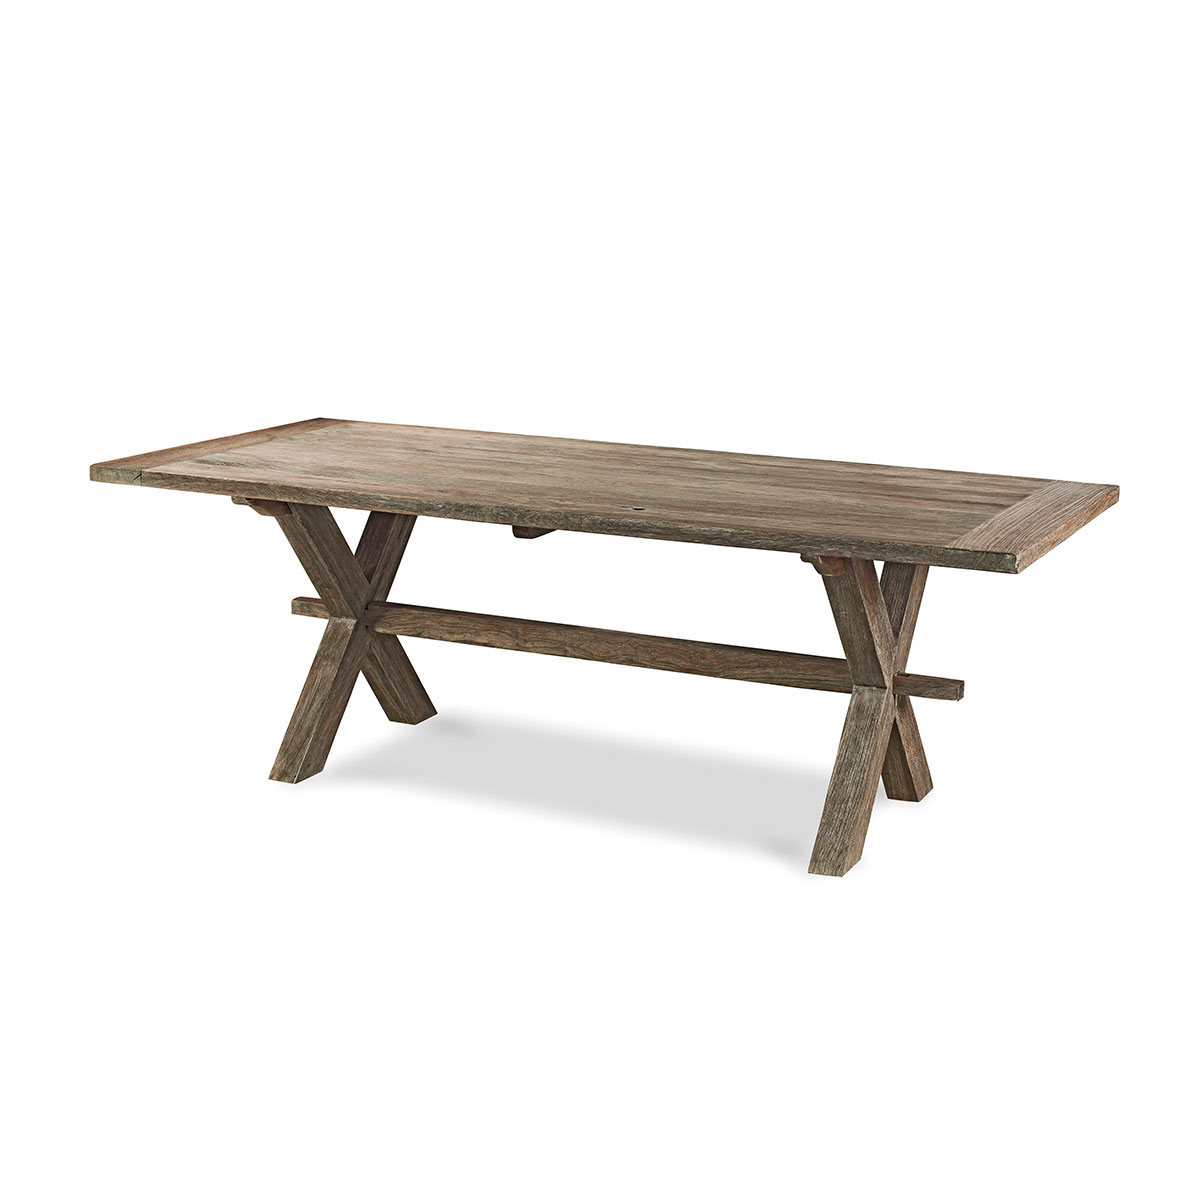 Rectangular wood dining table Cloe Braid